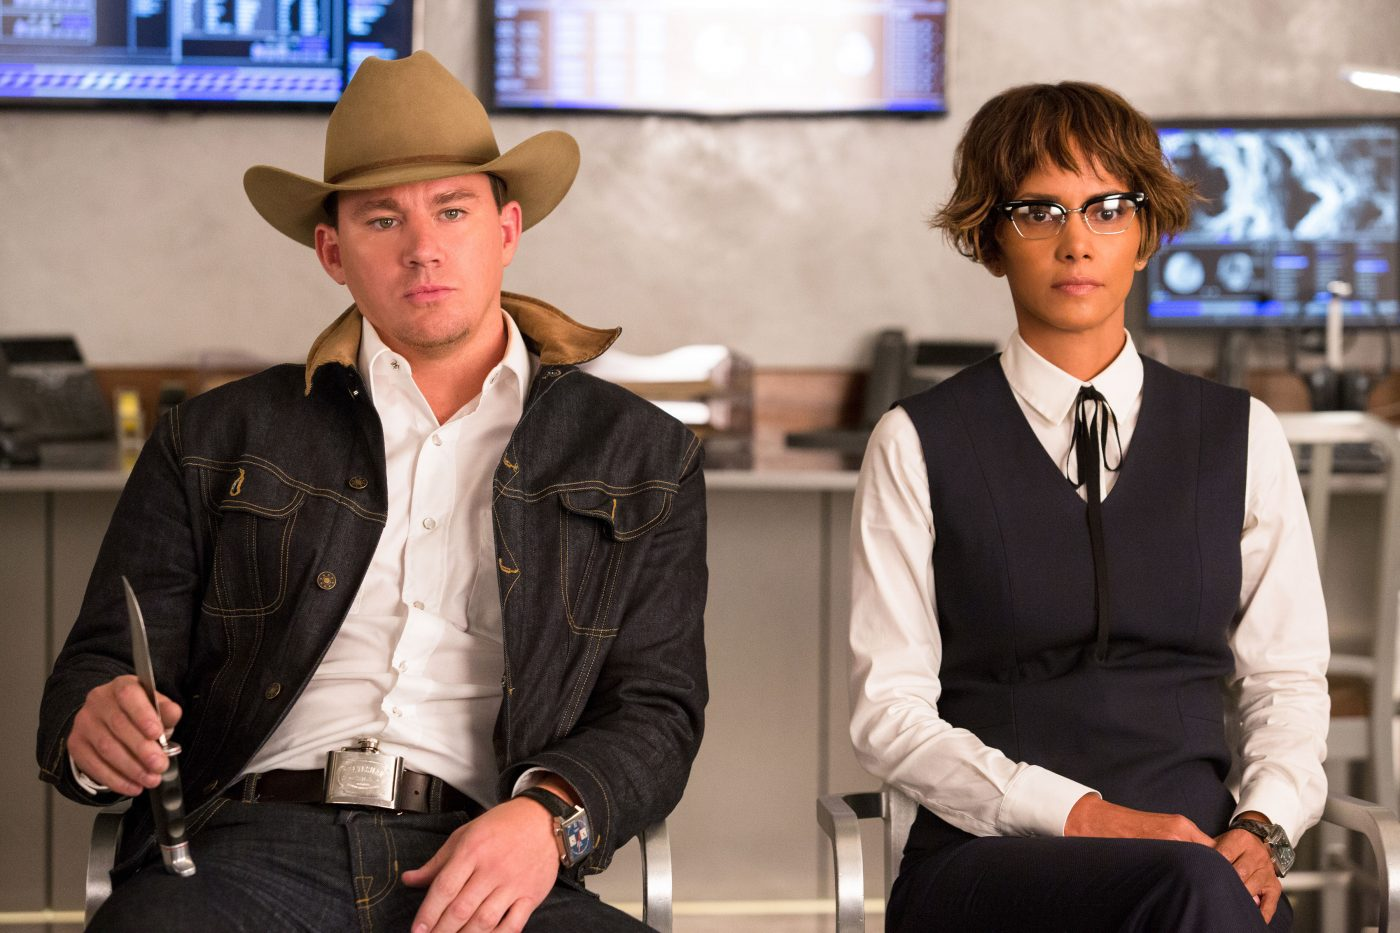 'Kingsman: The Golden Circle' reception: Sequel gets panned by some critics